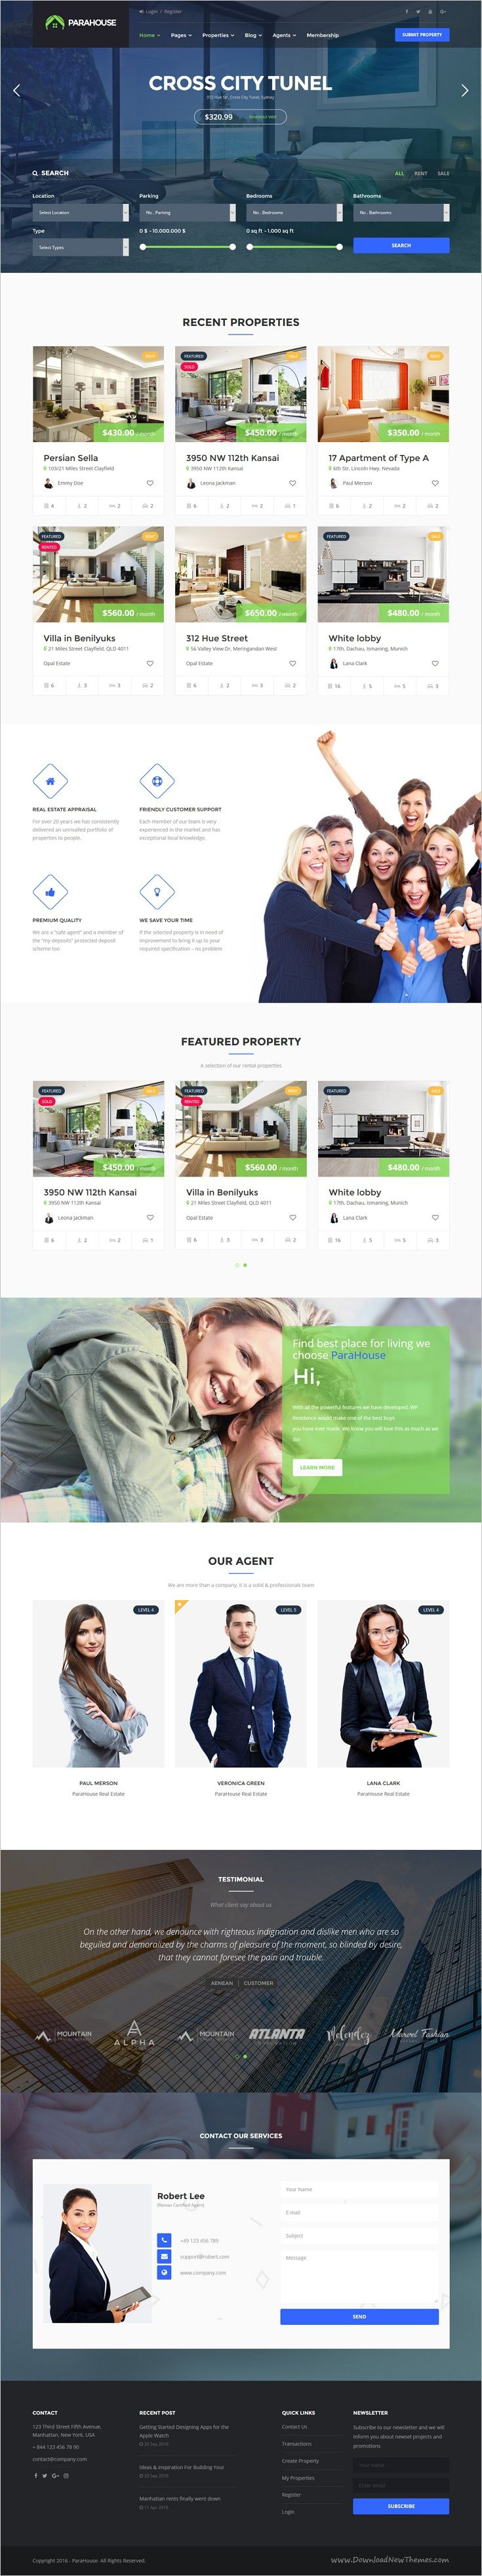 Parahouse is a wonderful responsive #WordPress theme for #realestate, Property Agents, Rent #Villa, #Apartment website download now➩ https://themeforest.net/item/parahouse-modern-real-estate-wordpress-theme/18150539?ref=Datasata